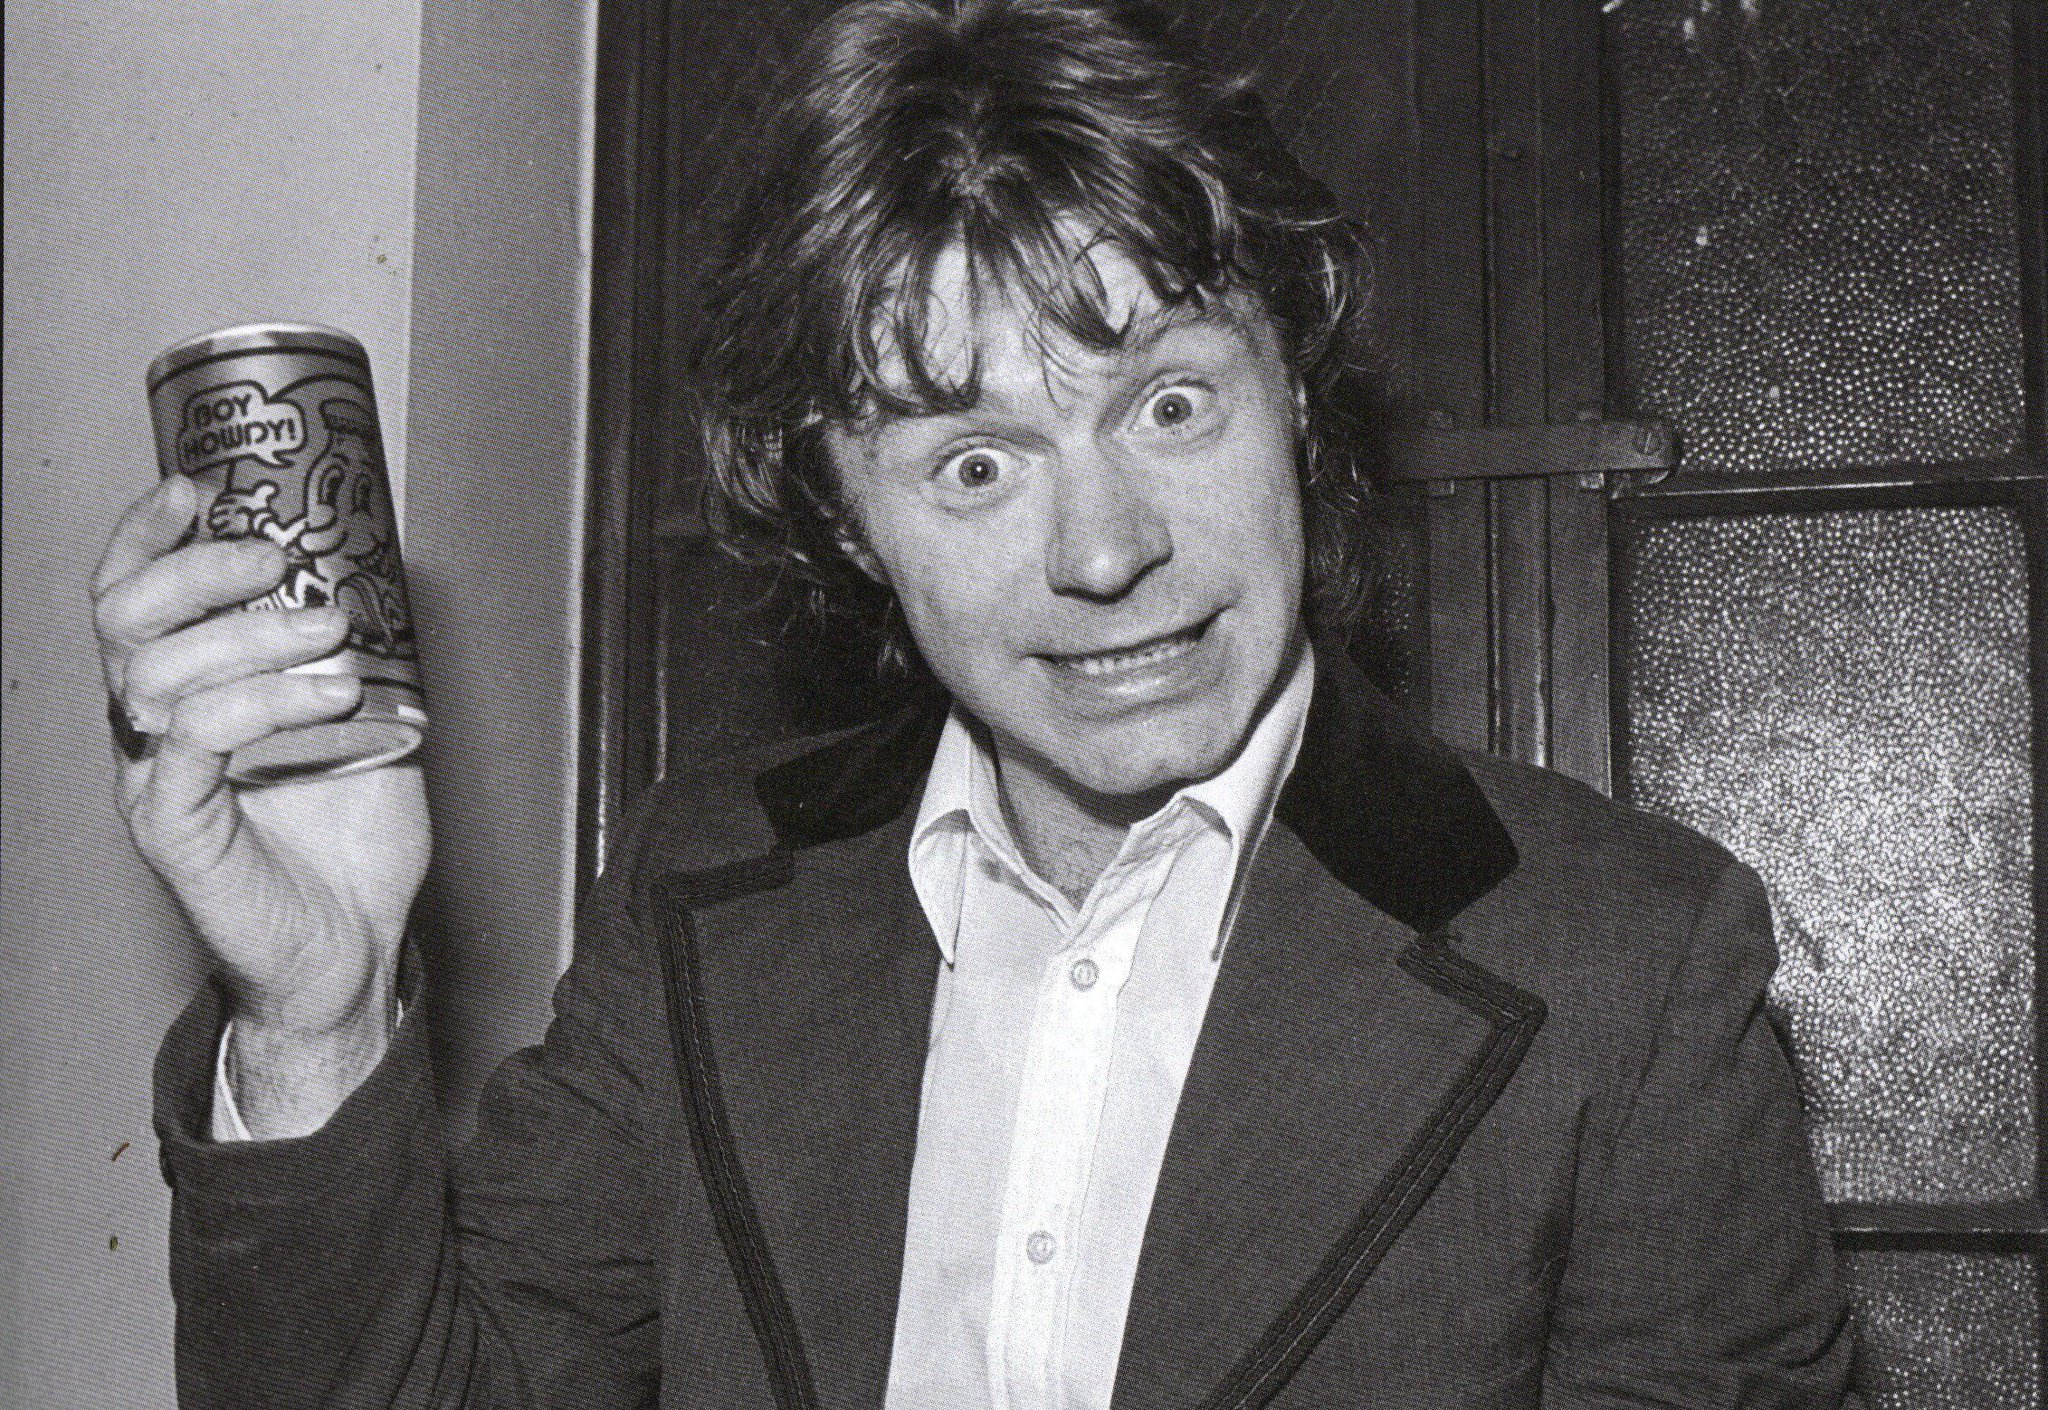 Happy Birthday Welsh singer/songwriter, guitarist, actor and record producer Dave Edmunds (April 15, 1944- )